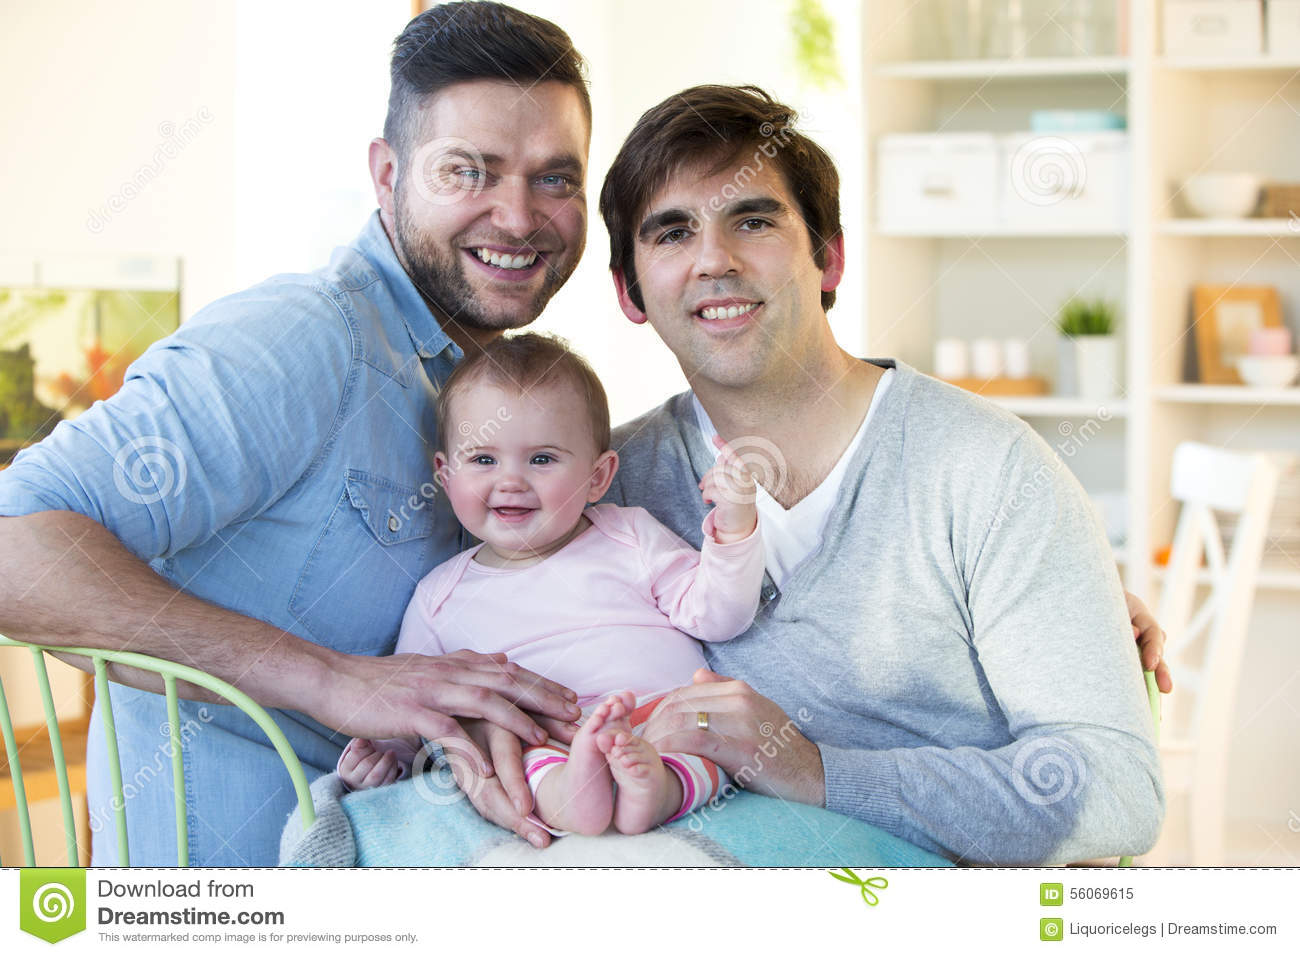 Same sex couple with daughter at home